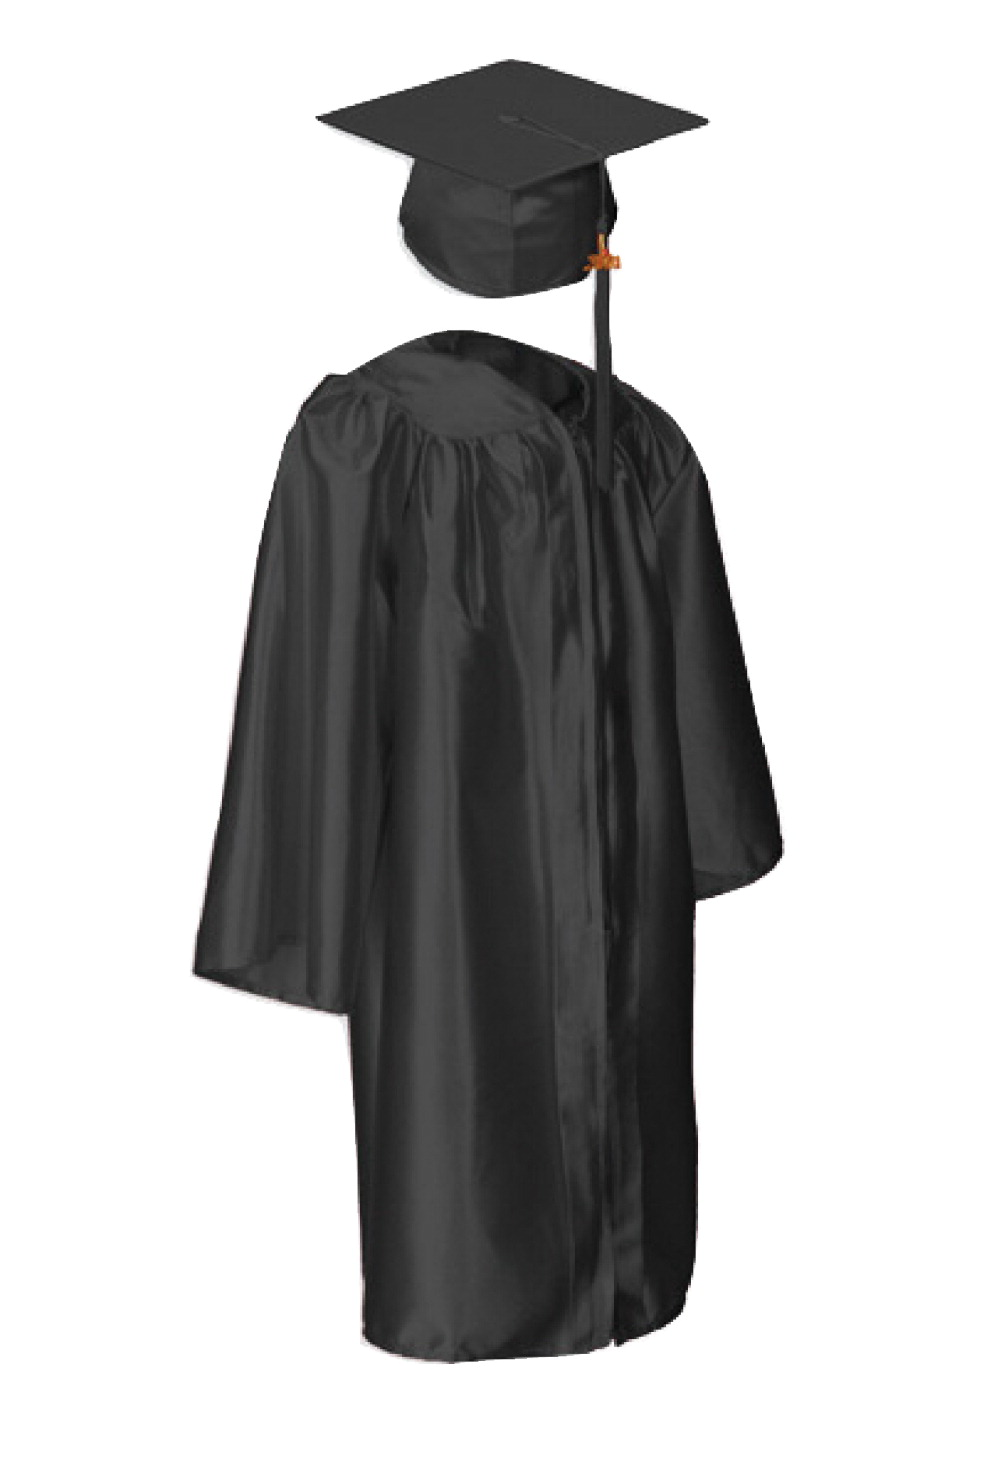 School Specialty Gown, Youth, Polyester